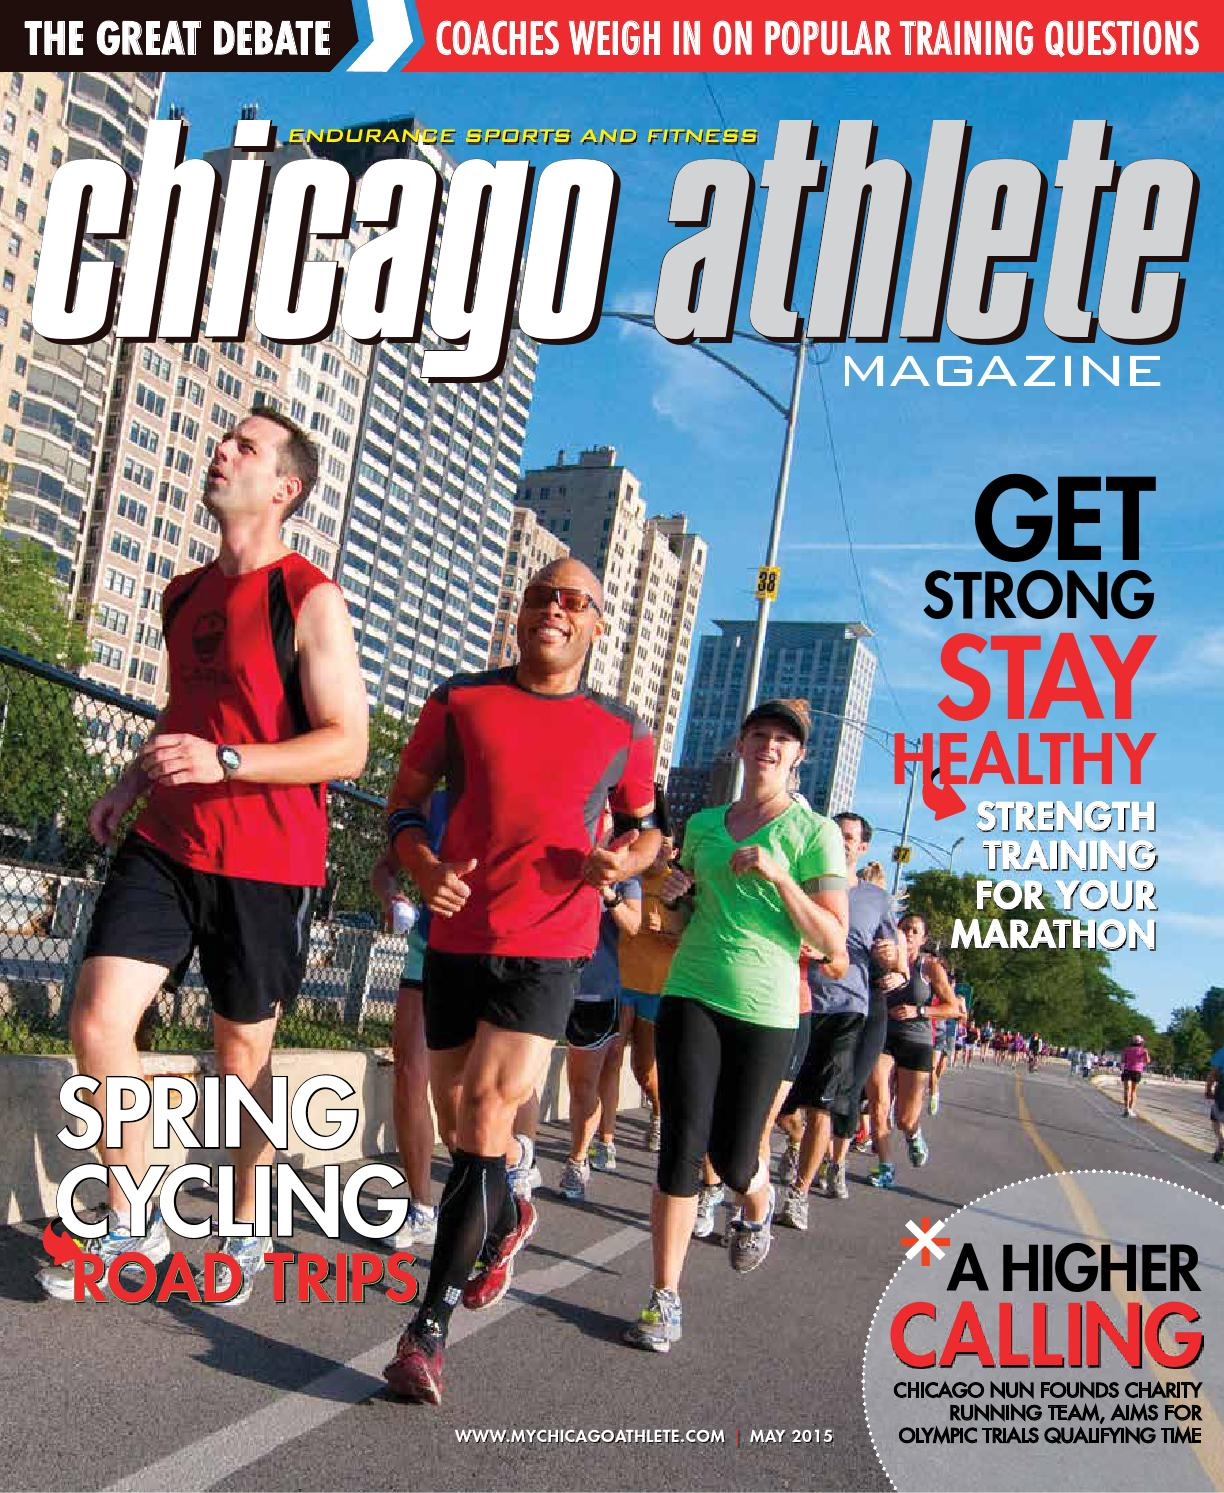 Chicago Athlete 2016 June July Issue By Kelli L Issuu Aqua Water Jogging Belt For Your Run Cross Training Post Stroke Attack Size Magazine May 2015